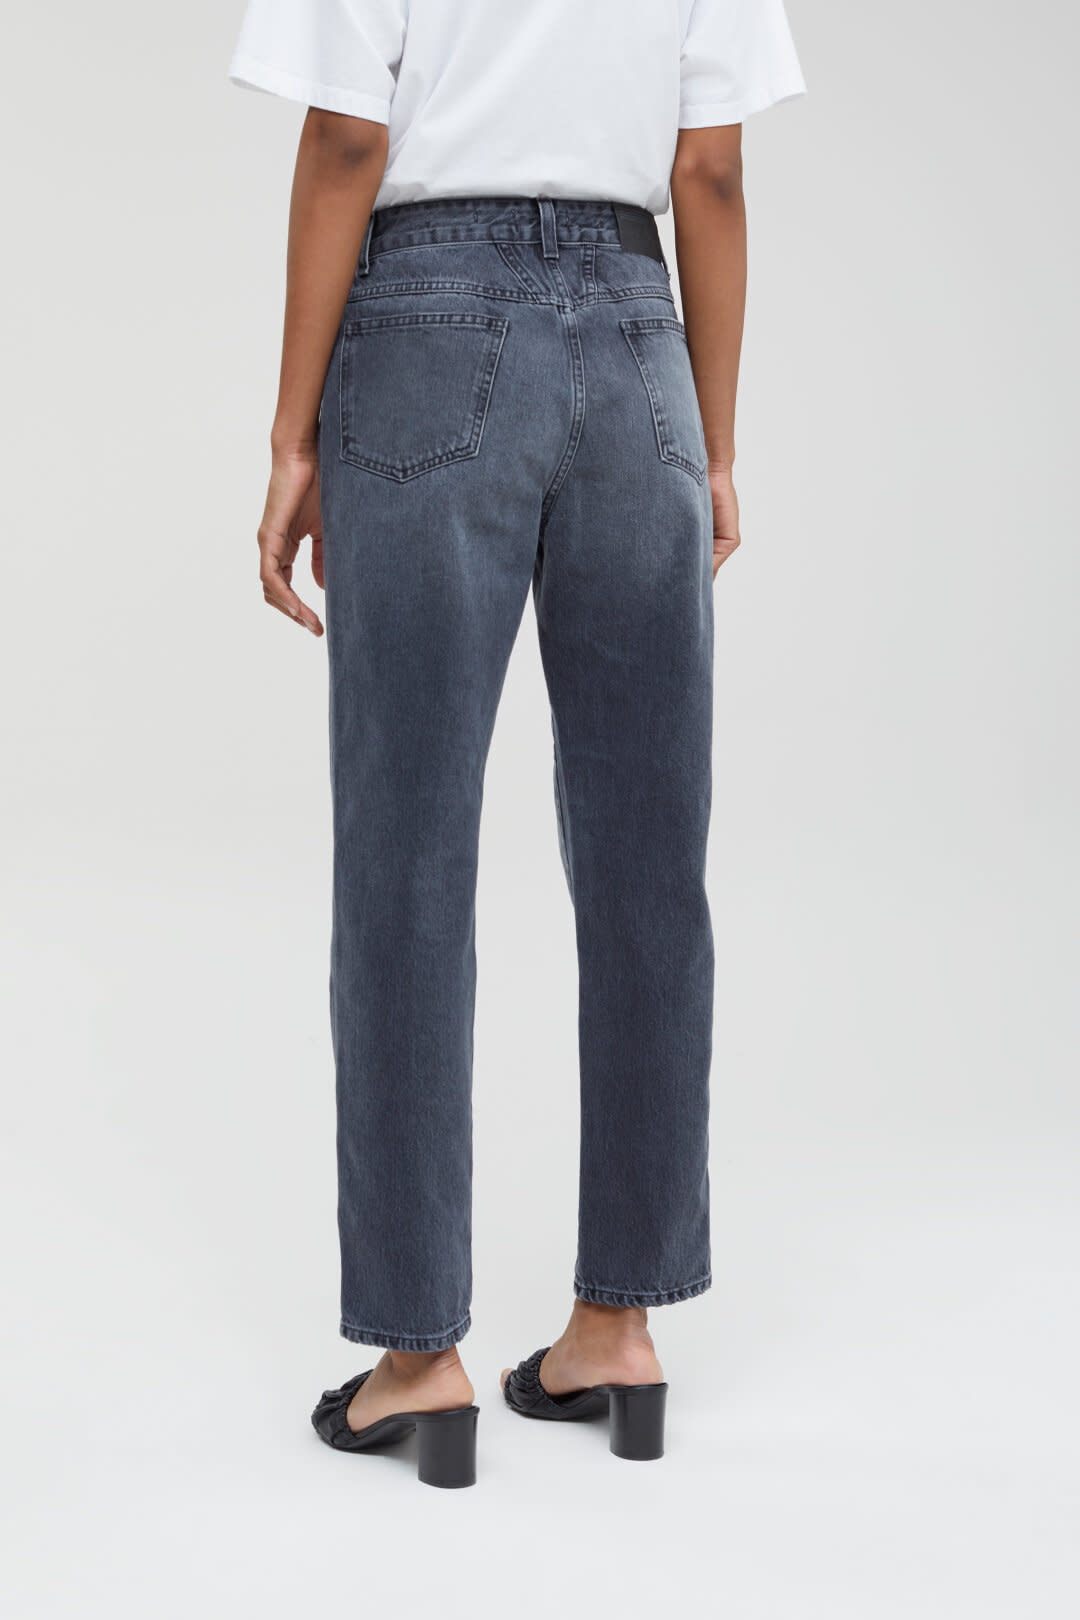 Pedal Pusher Jeans - Mid Grey-2